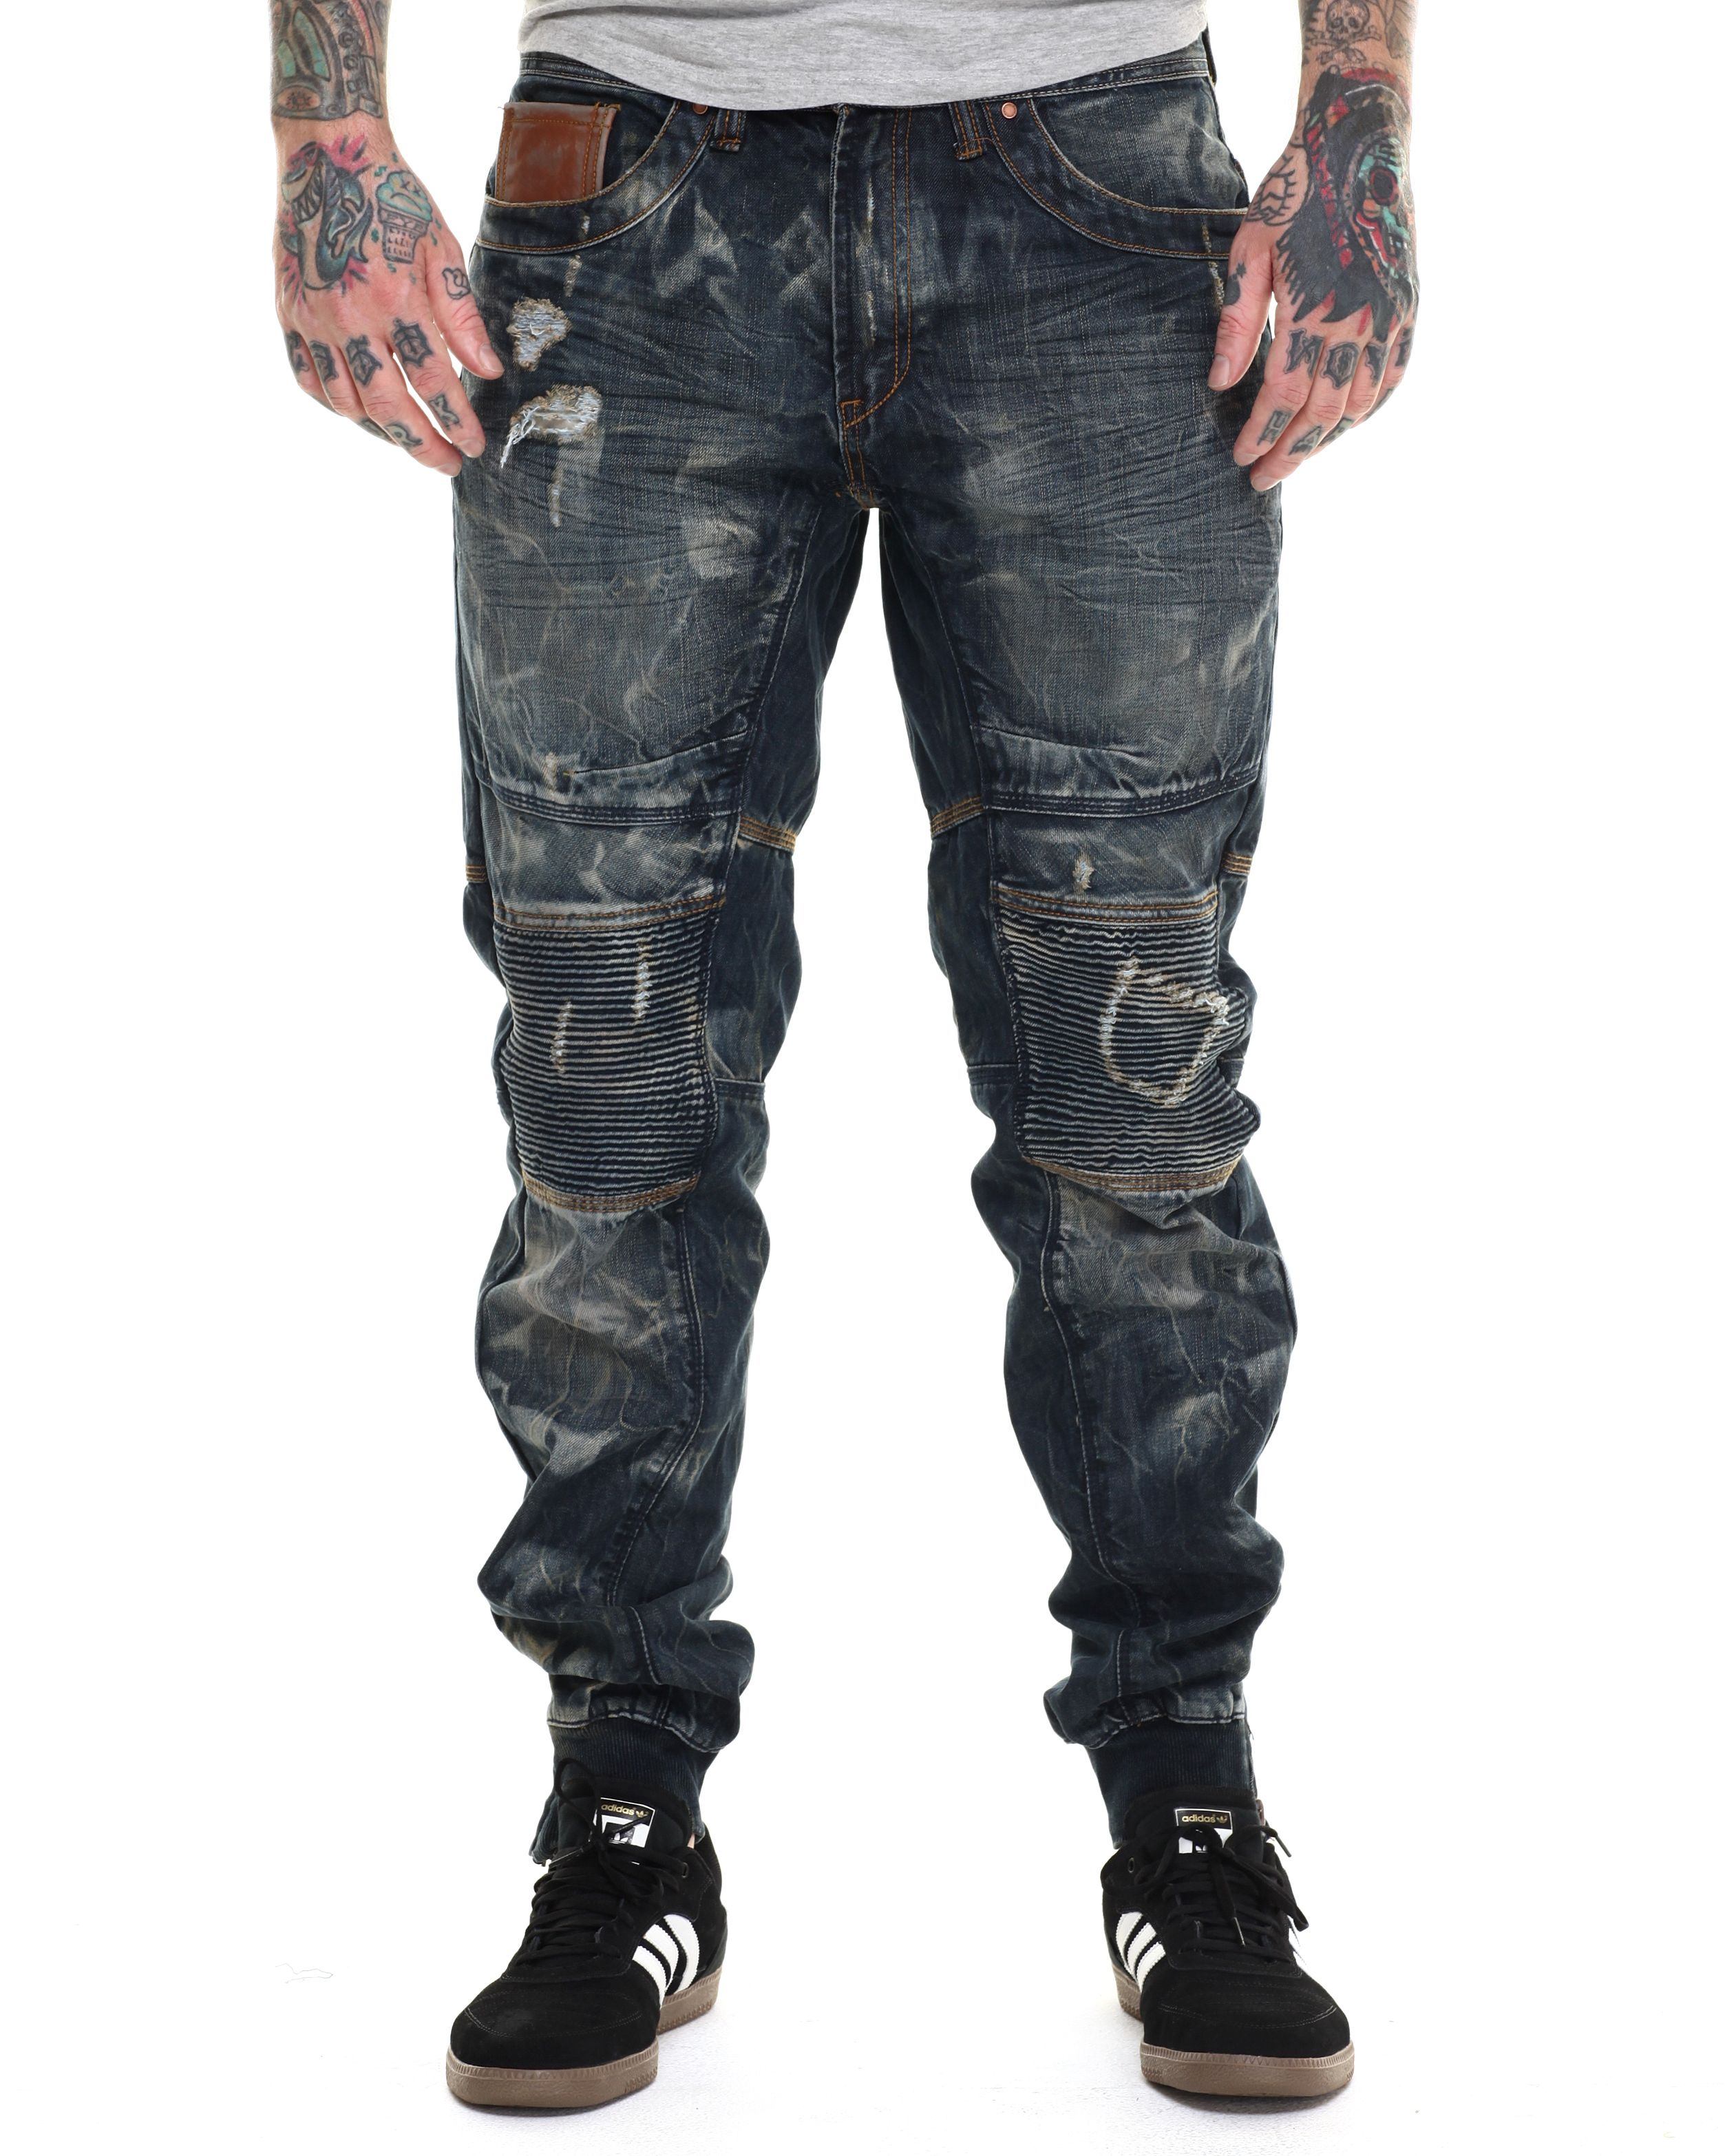 9edff785 Lieutenant Denim Jeans Men's Jeans & Pants from AKOO. | J's & J's ...